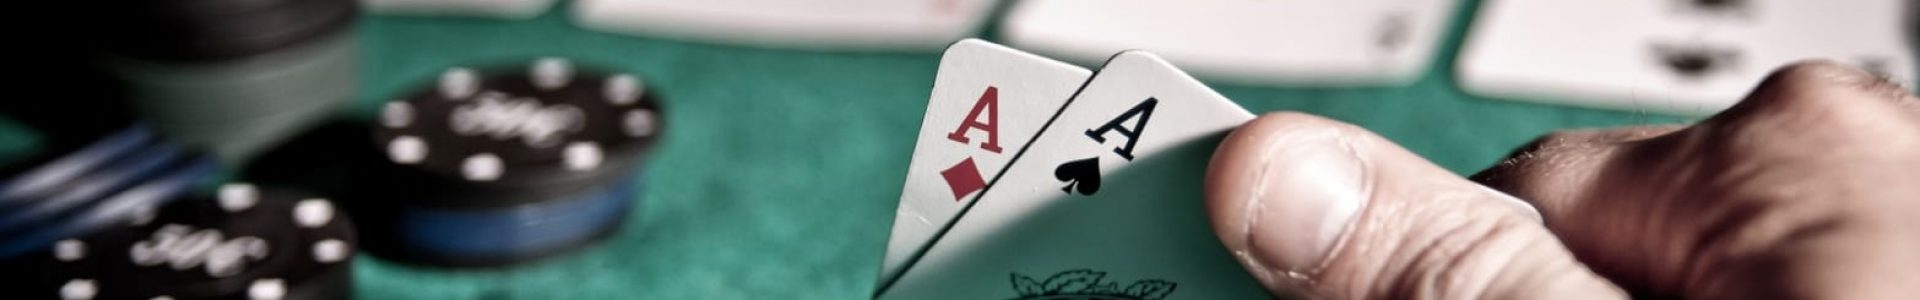 Why online casino so popular in New Zealand